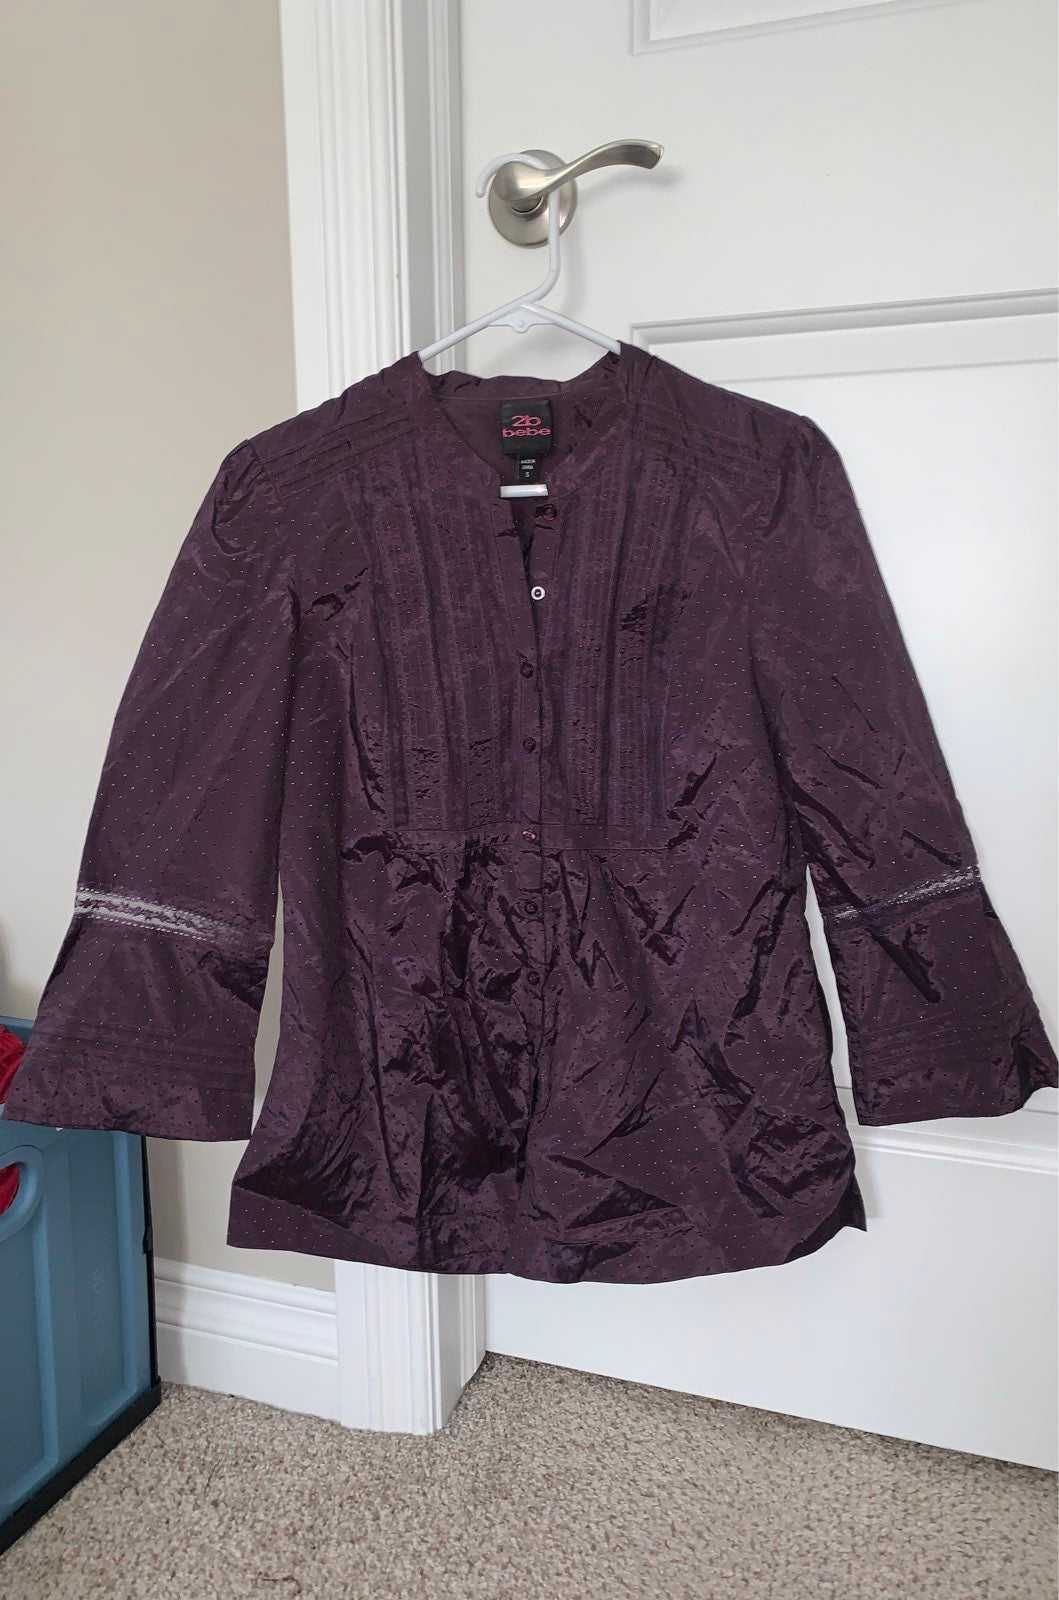 2B Bebe Top- Size Small